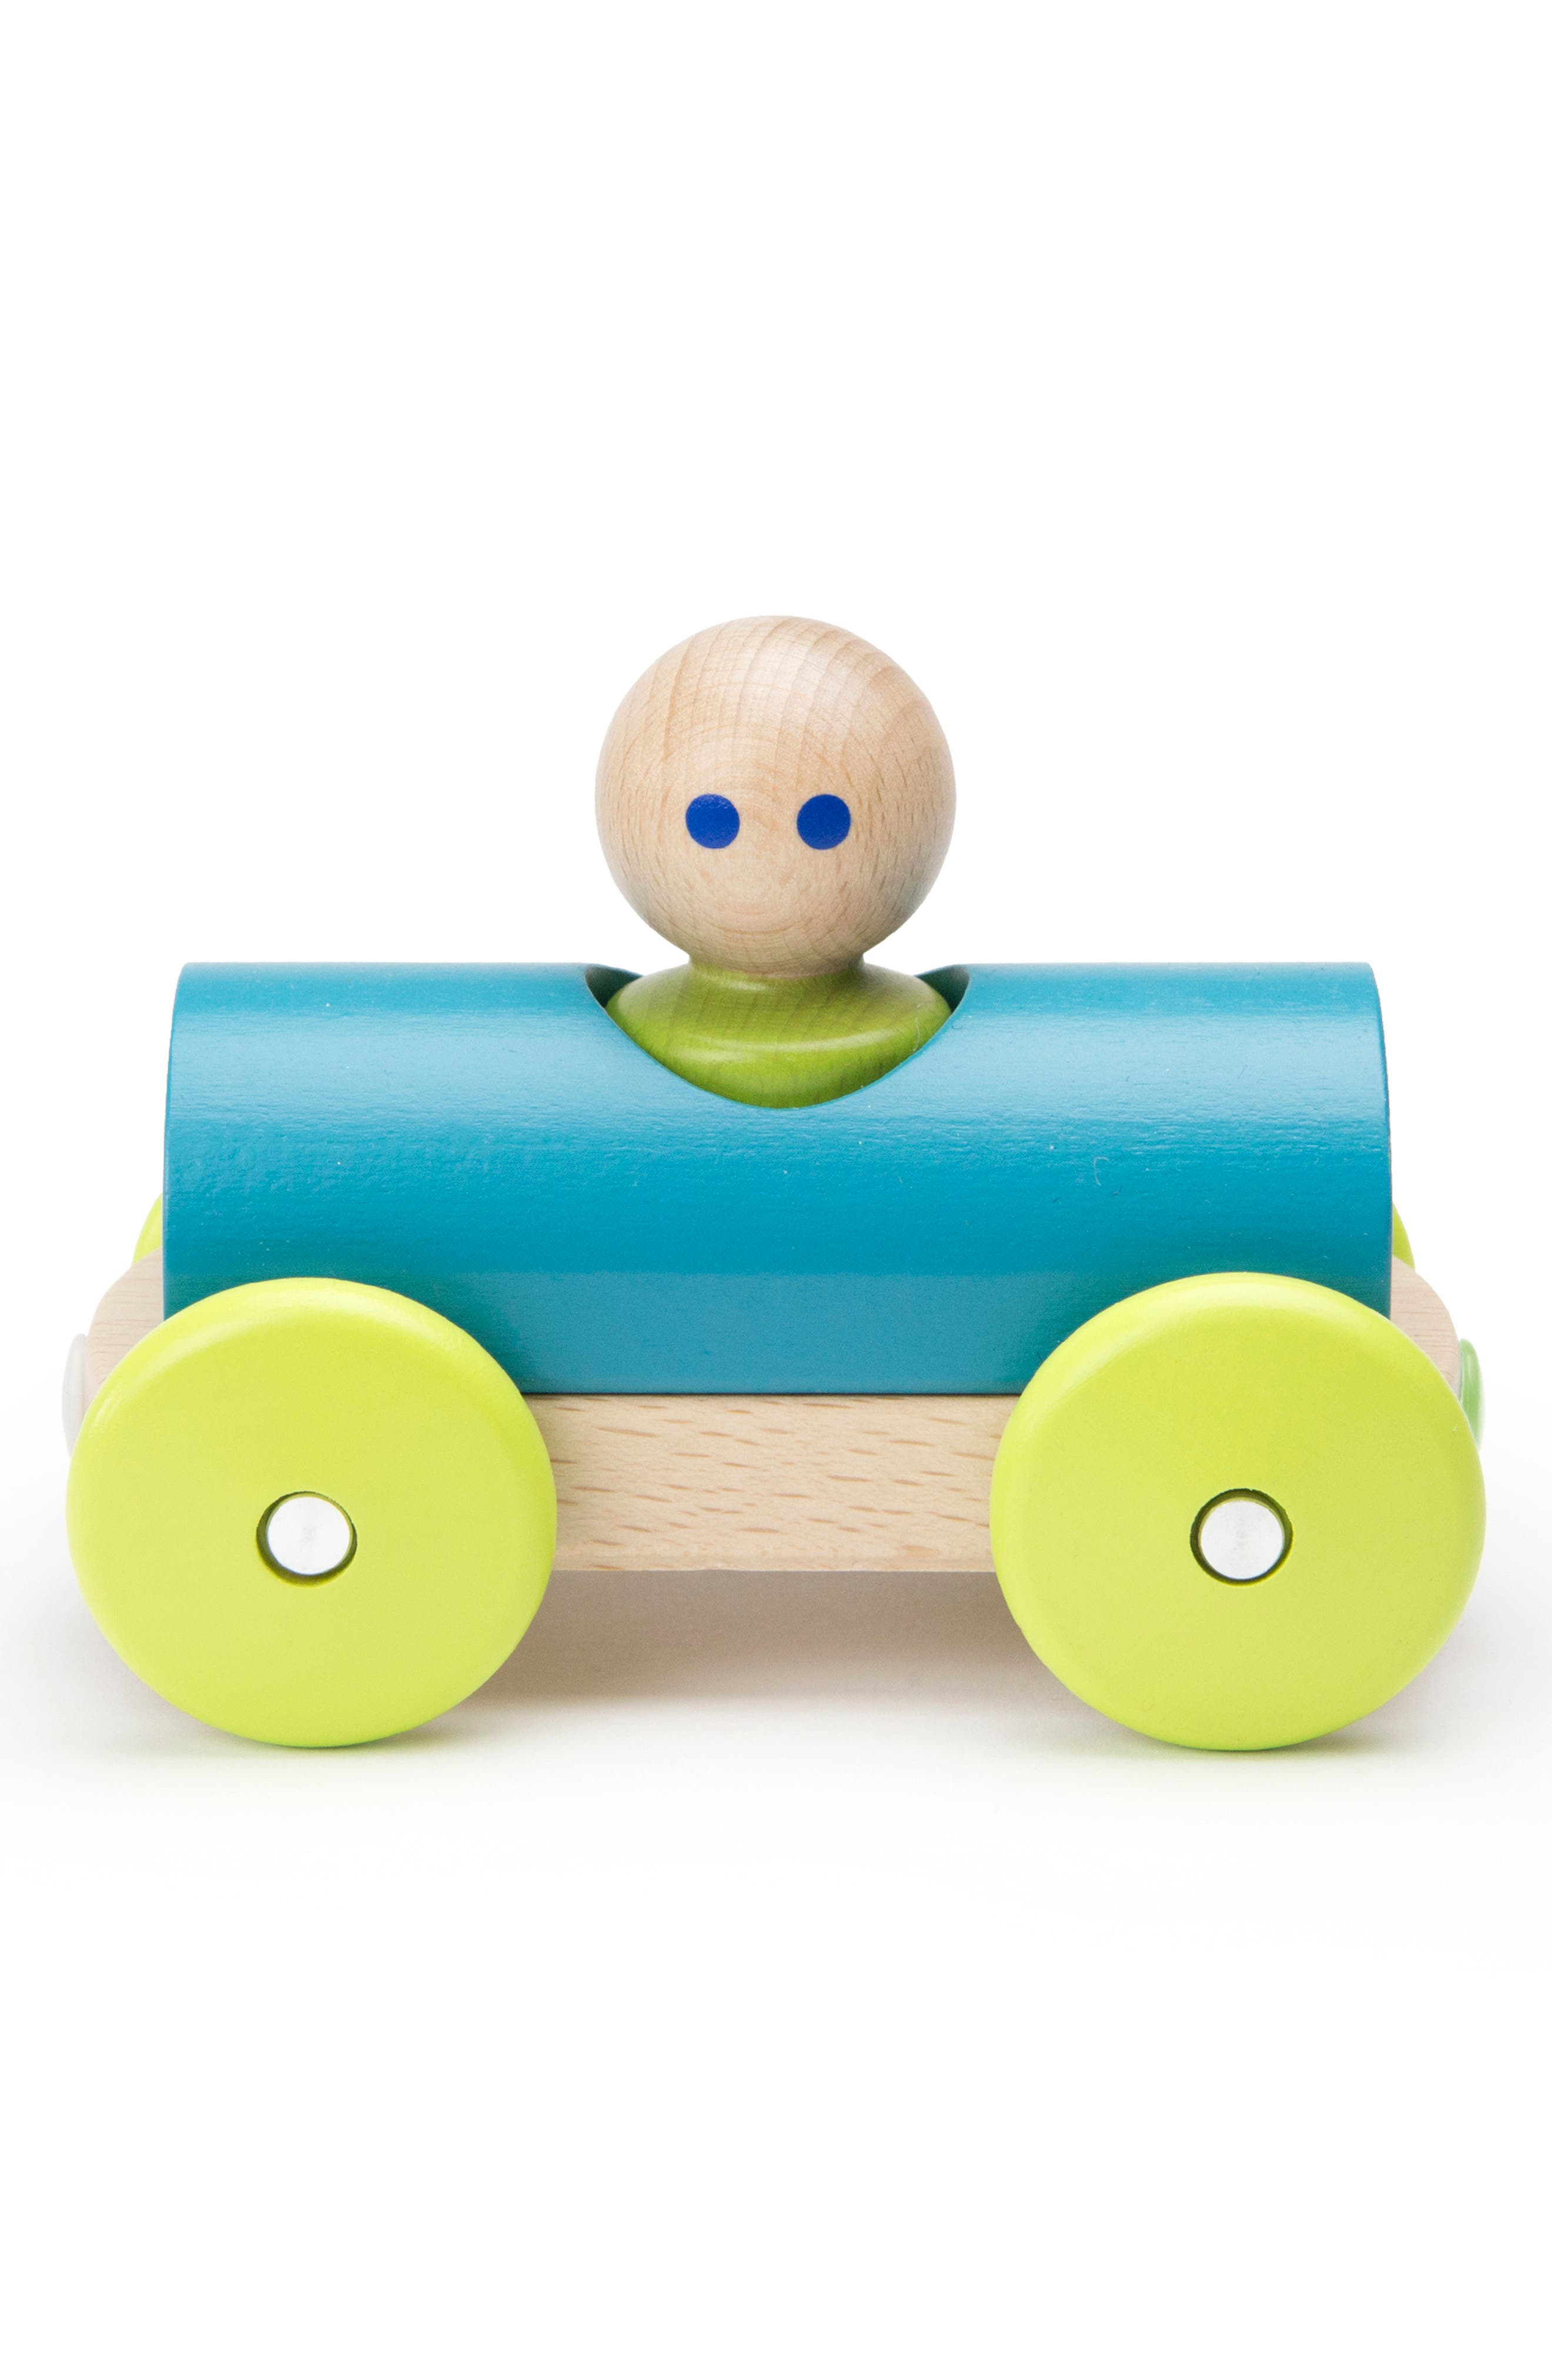 Half Pipe Magnetic Racer Toy,                             Alternate thumbnail 8, color,                             960